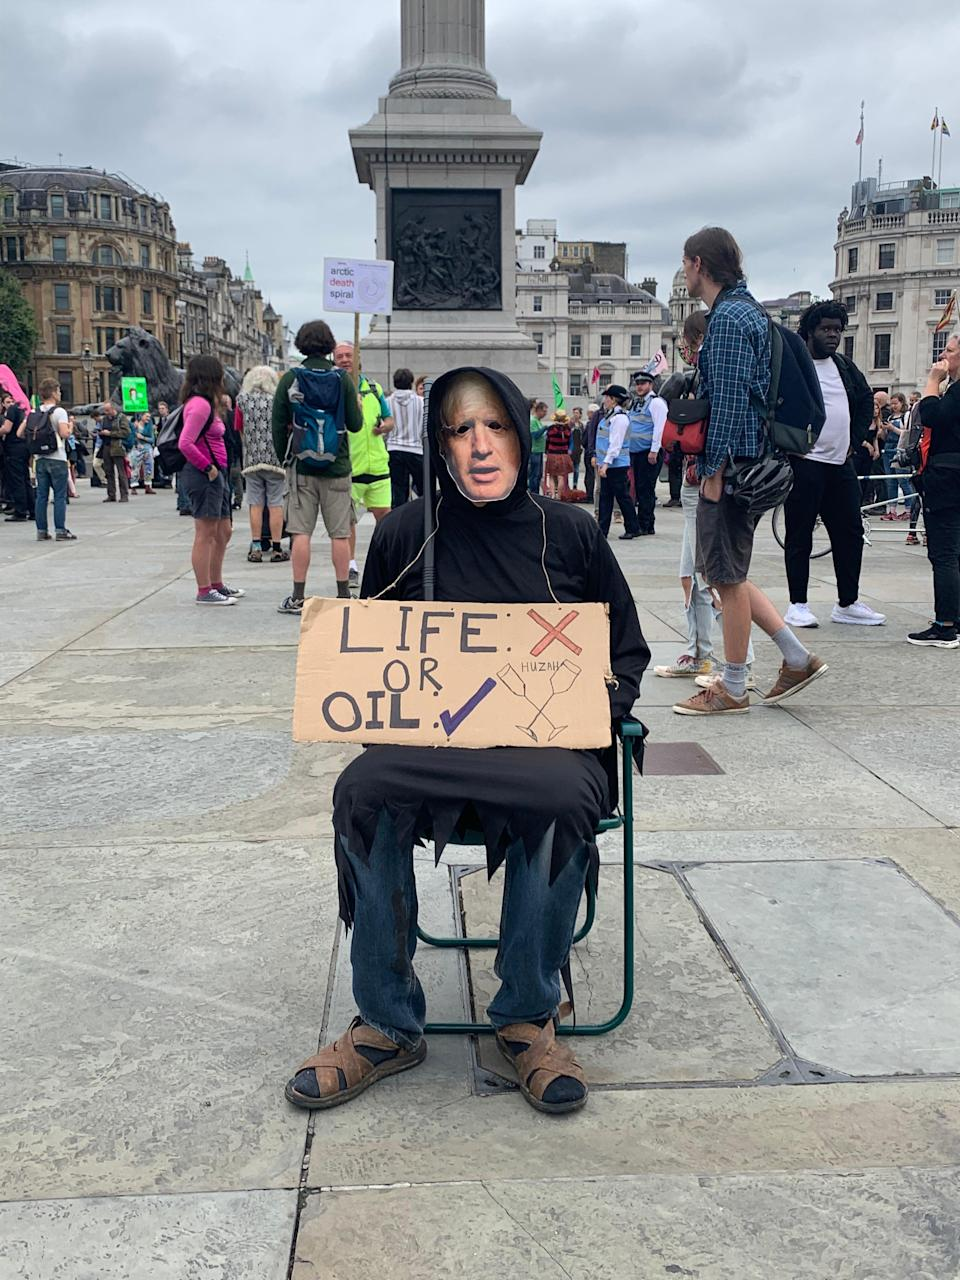 A man wearing a Boris Johnson face mask holds an anti-fossil fuel placard in Trafalgar Square (Sam Hancock/The Independent)